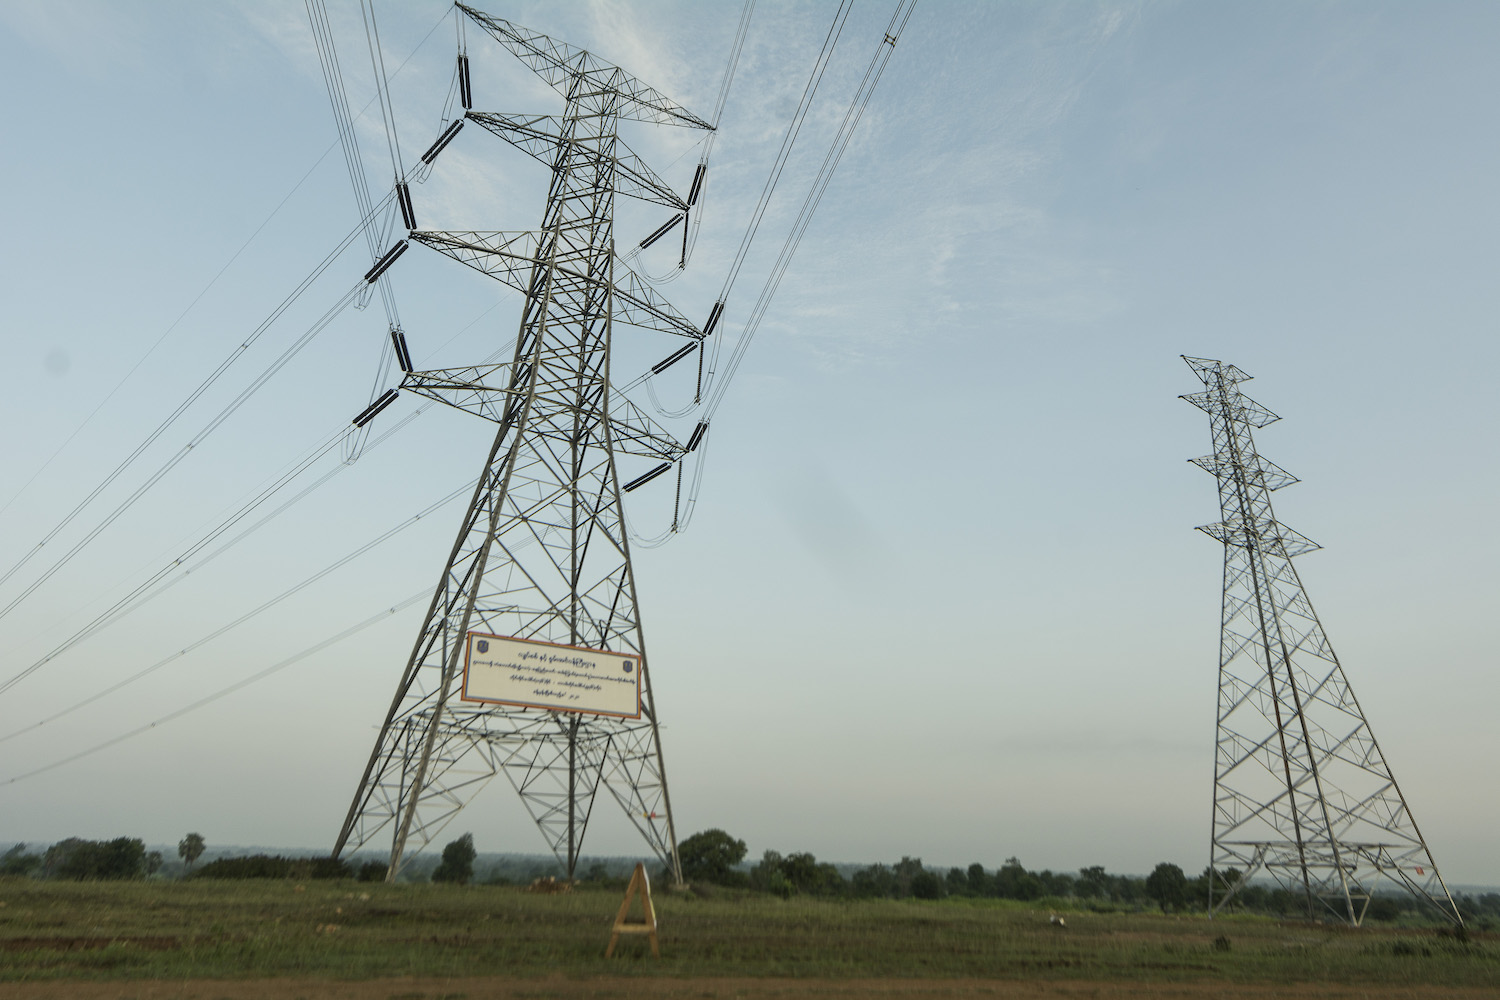 A 500 kilovolt transmission line at Meiktila in Mandalay Region. Most of the 30 proposed solar power projects are in central Myanmar, where solar irradiance is high. (Teza Hlaing | Frontier)